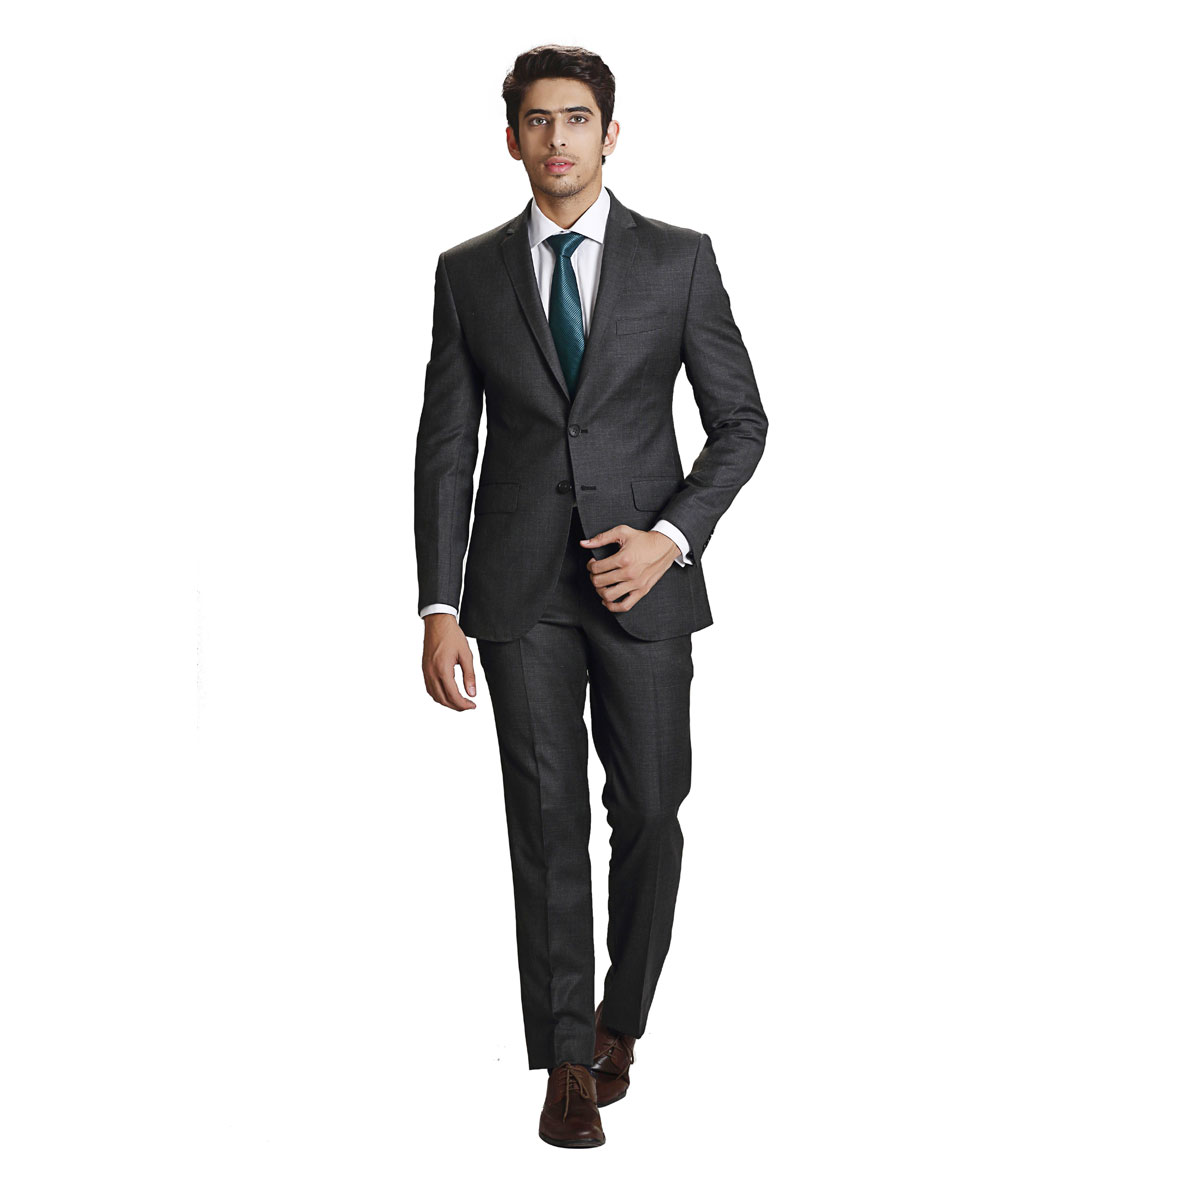 Fall In Love Charcoal Suit - Best Bespoke Suits. Premium Custom ...